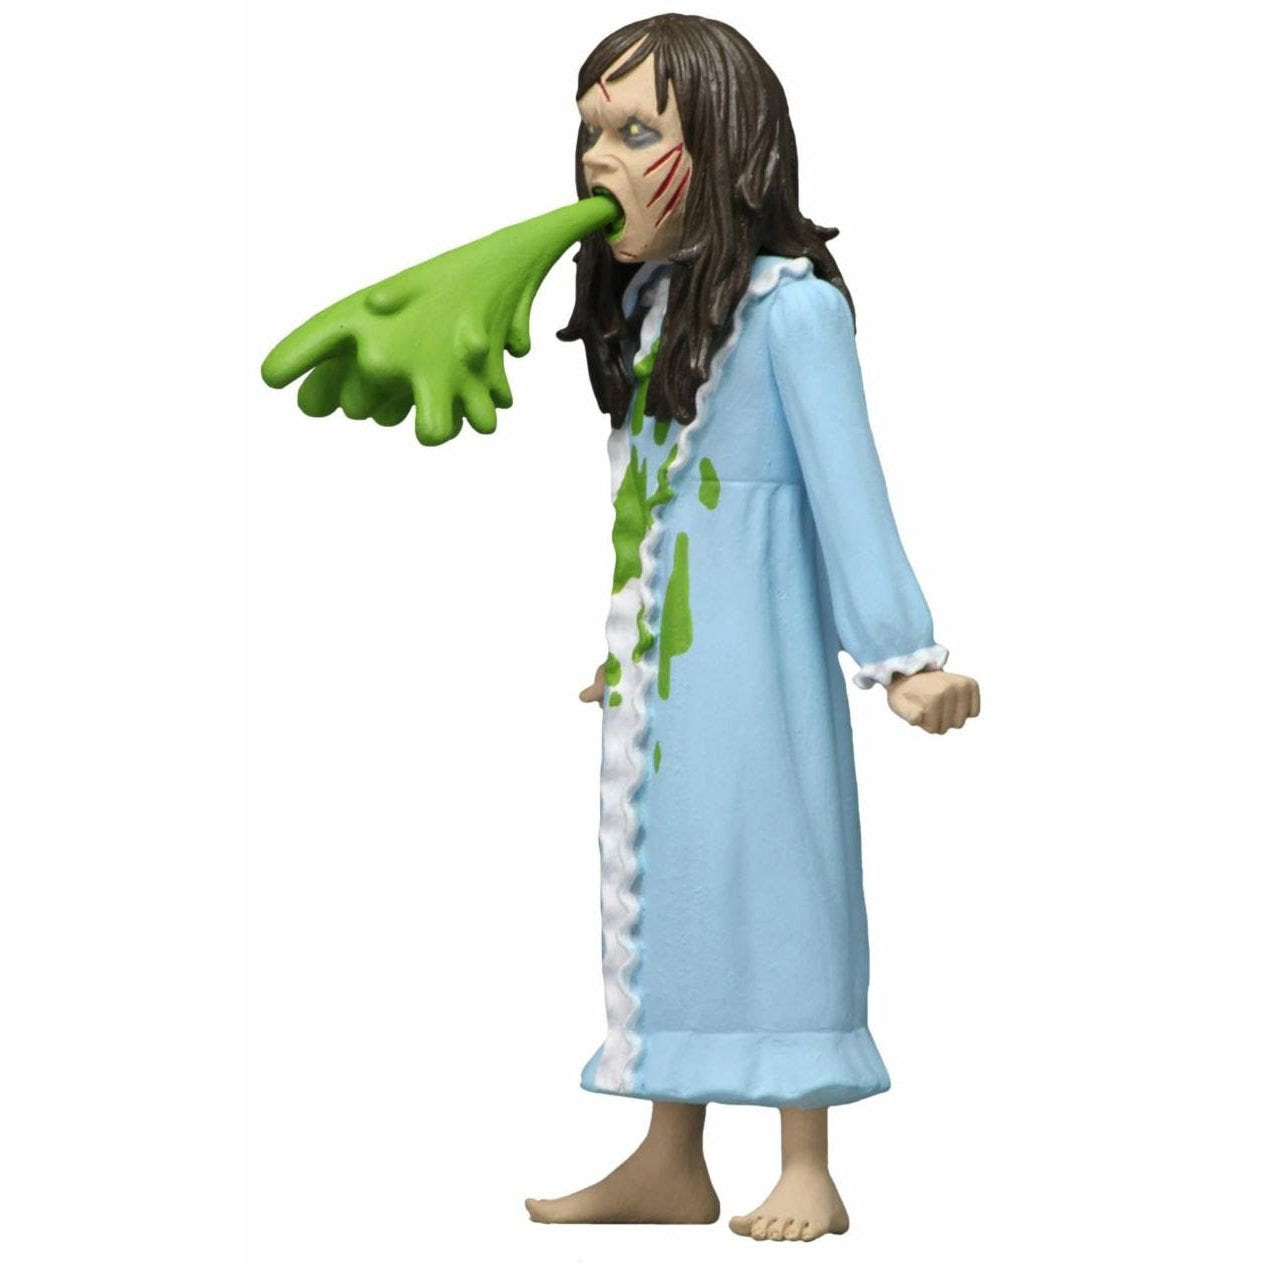 """Image of Toony Terrors 6"""" Scale Action Figure Series 4 - Regan (The Exorcist) - JULY 2020"""